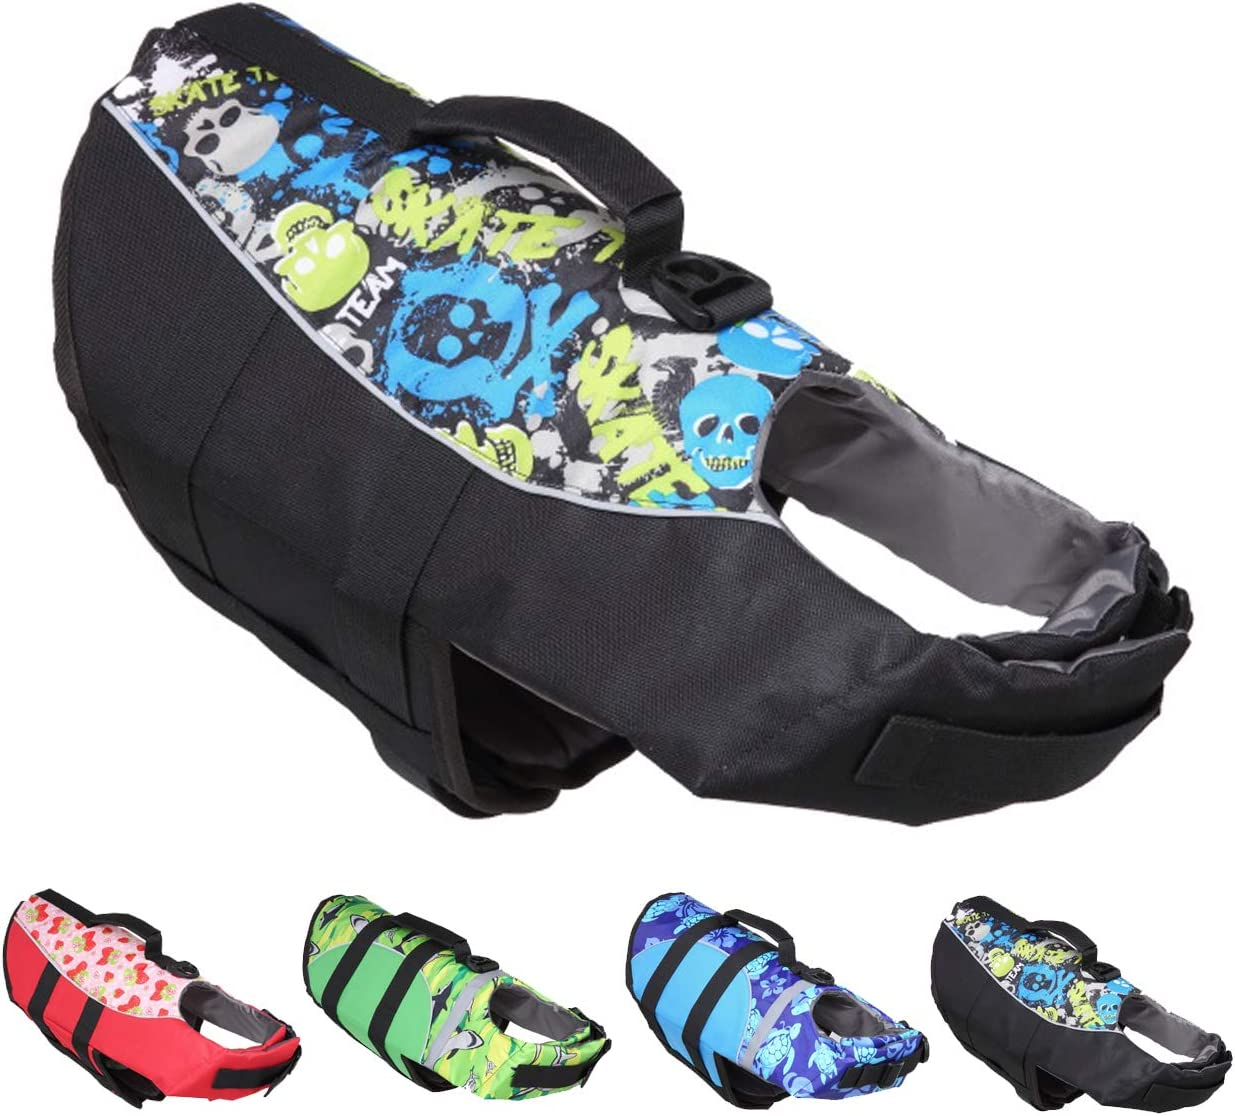 Huret Dog Life Jacket Dogs for Max 67% OFF Swimming Vests Puppy Float At the price of surprise